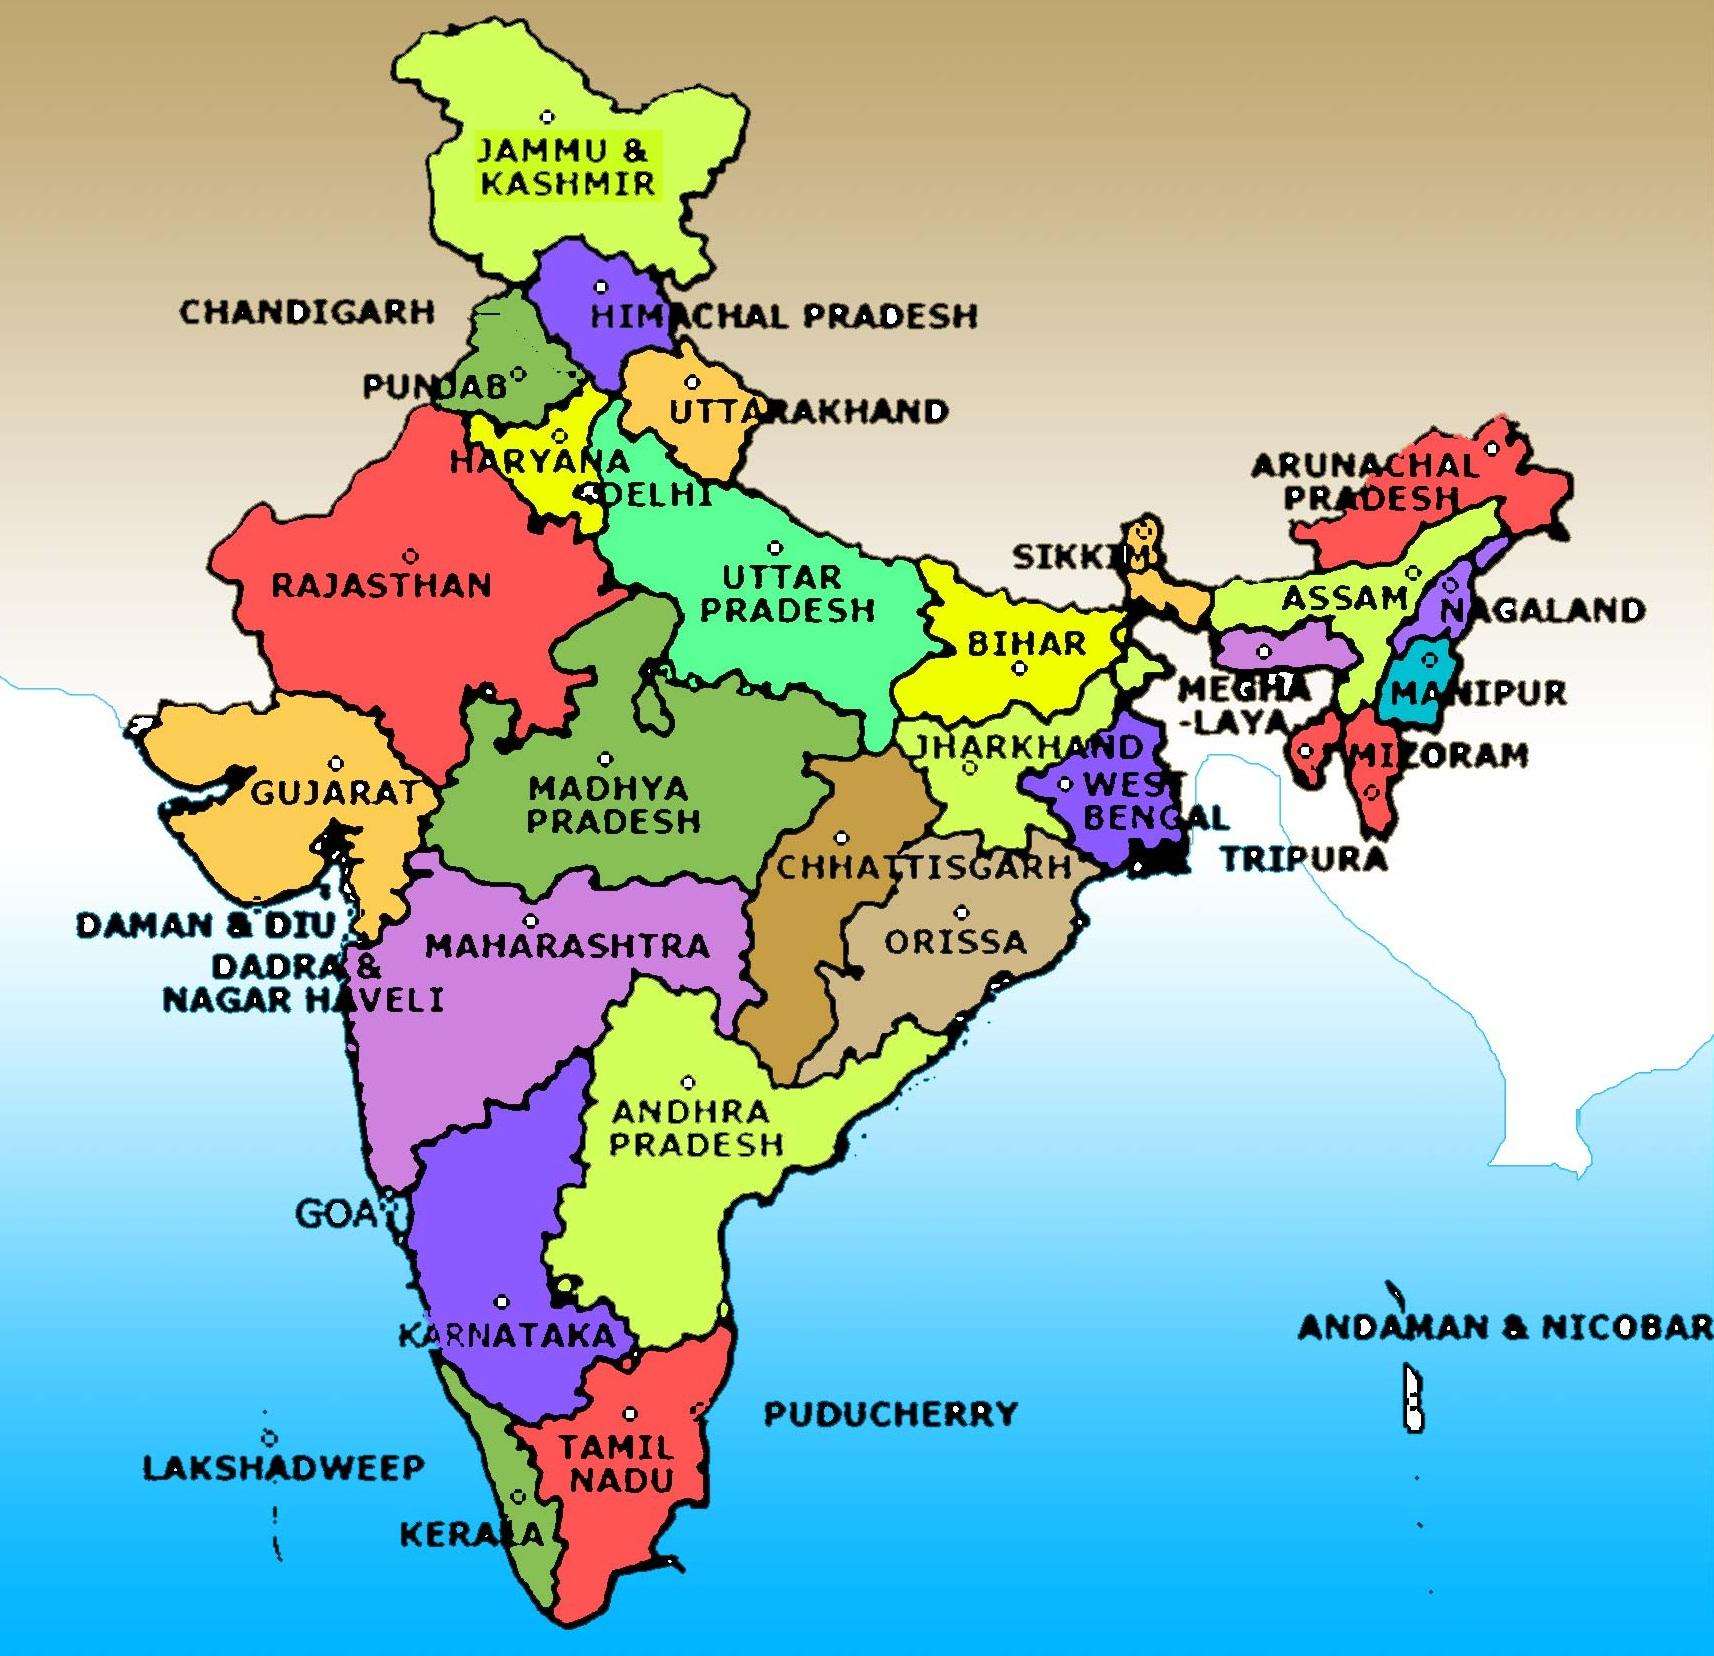 Indian Flag Full Hd Wallpaper India Map Image With State Name Map Of India Image With